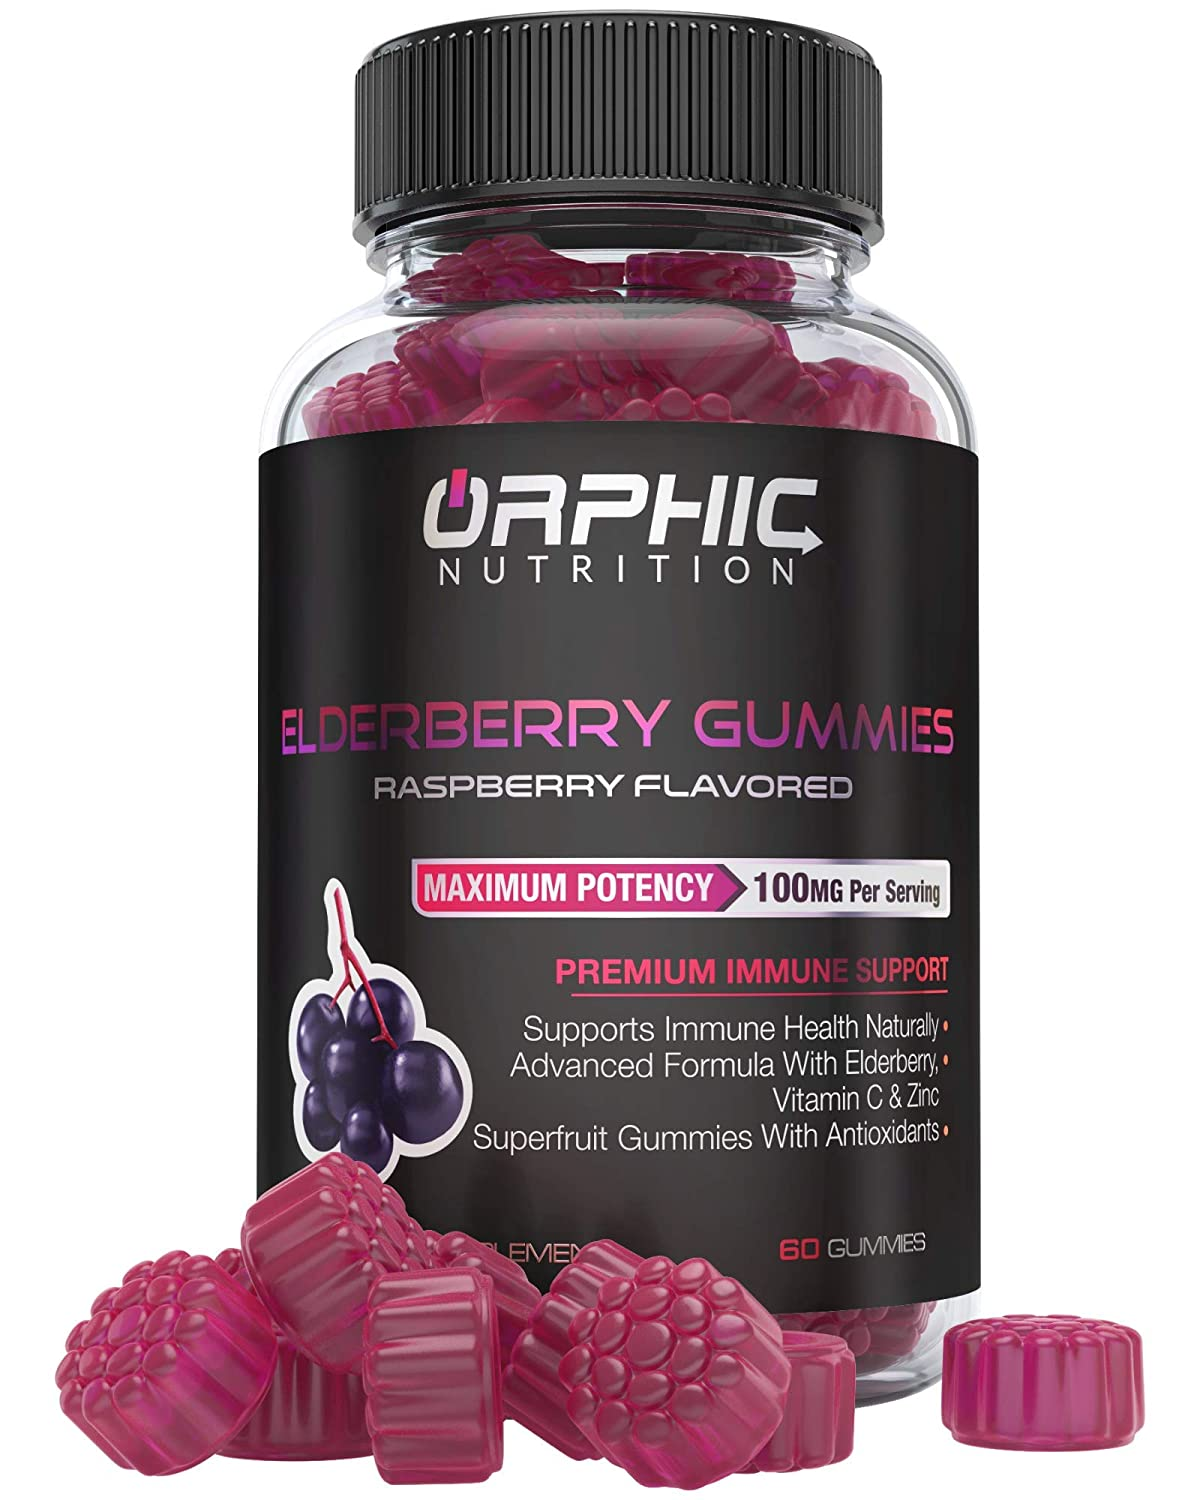 Natural Elderberry & Vitamin C Gummies - Premium Antioxidant Formula & Immune System Booster for Men, Women and Kids - Best Source of Vitamin C & Zinc - 100MG Of Elderberry For Immune Support & Health